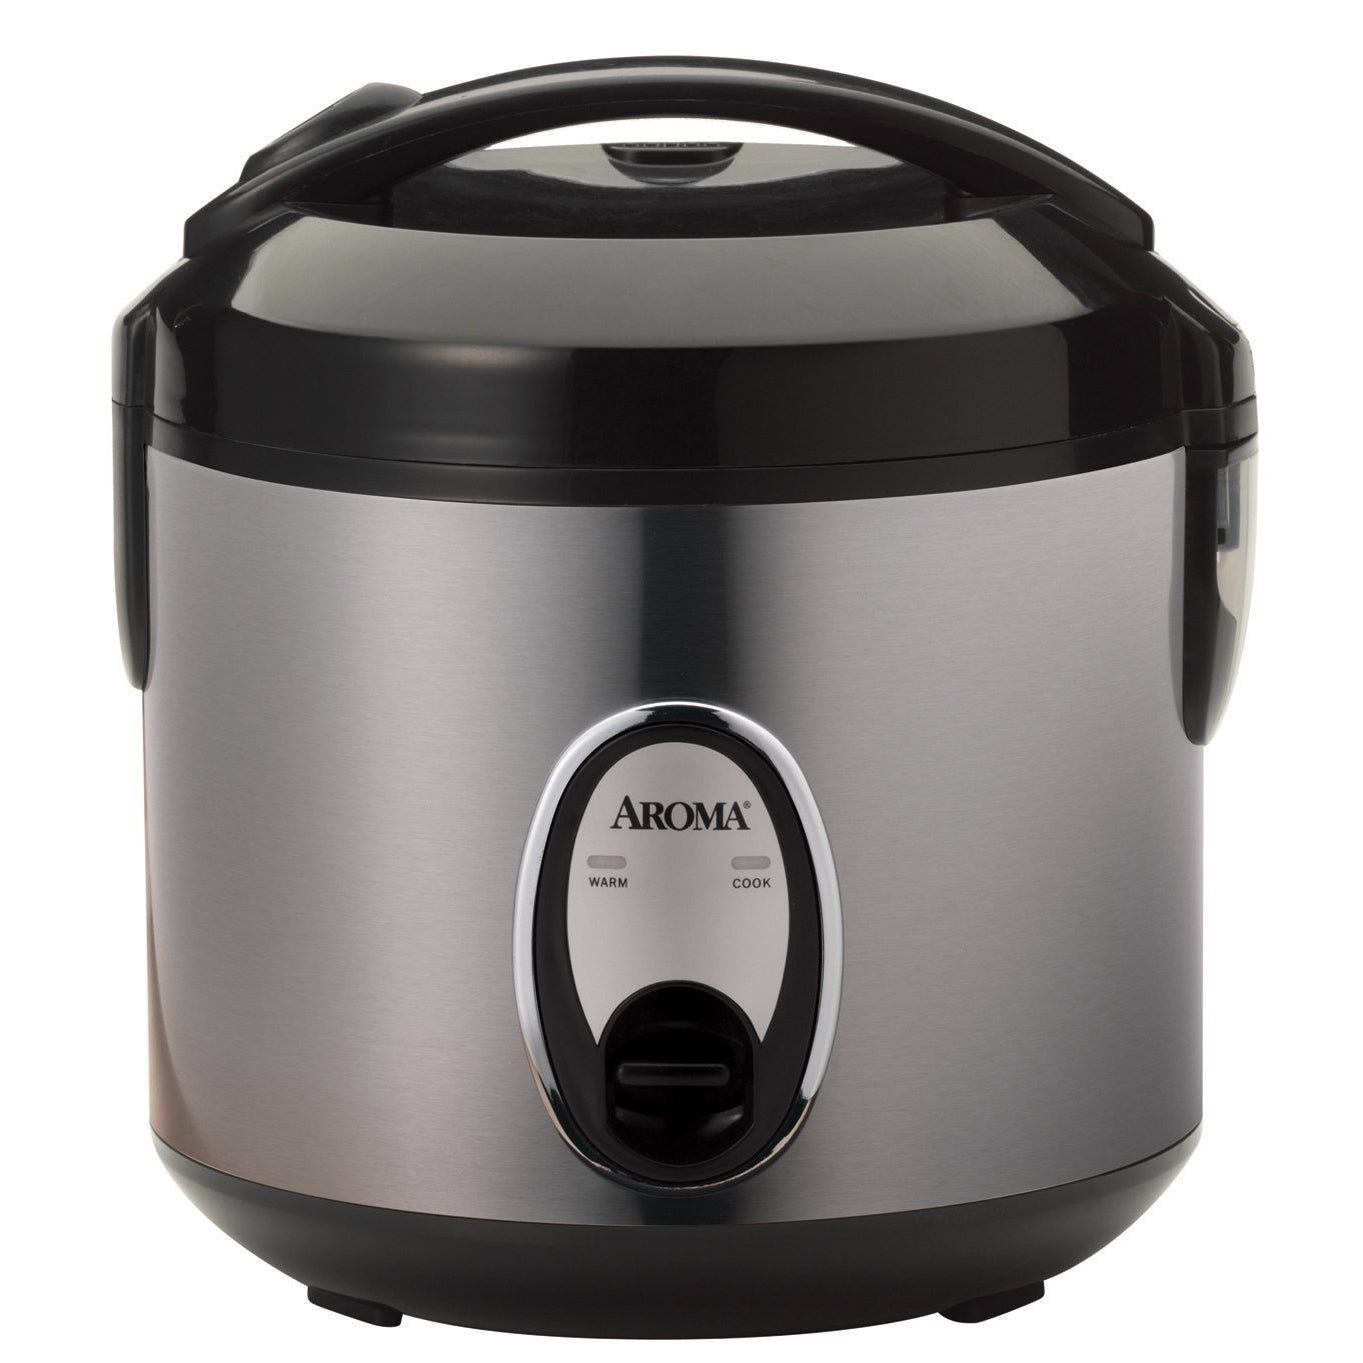 Aroma Housewares 8-cup Rice Cooker